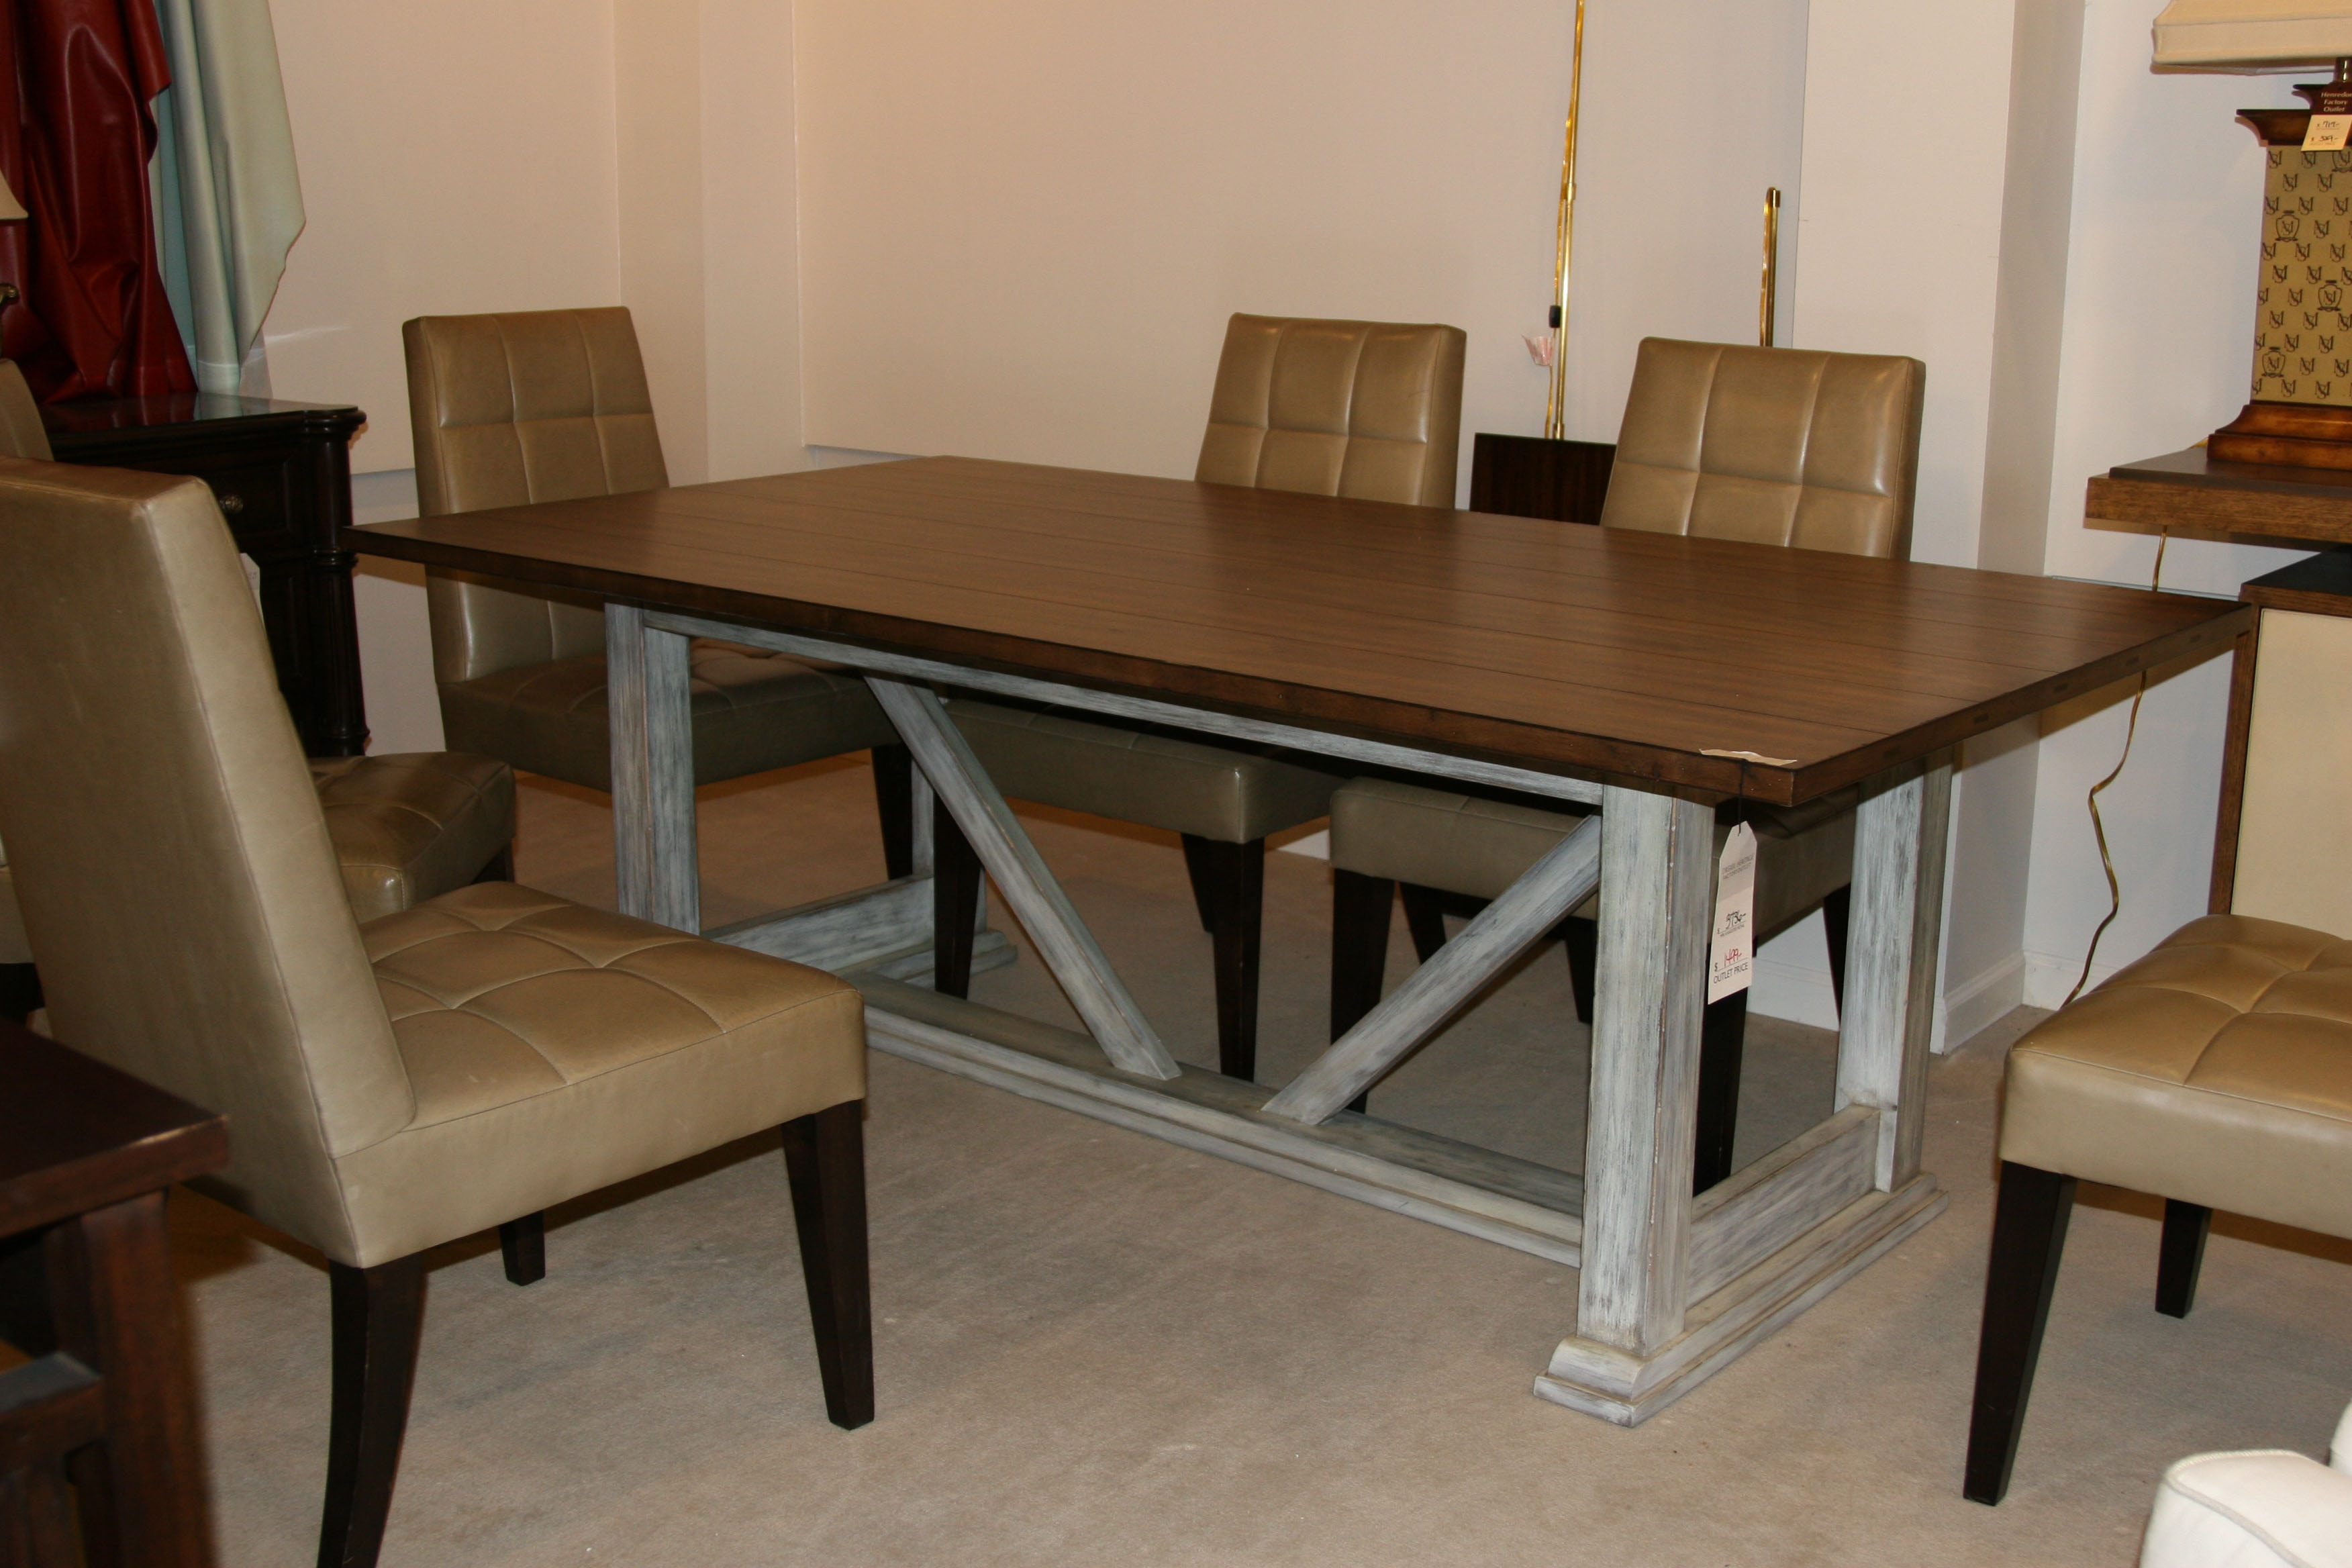 dining room tables | furniture | hickory furniture mart in hickory, nc